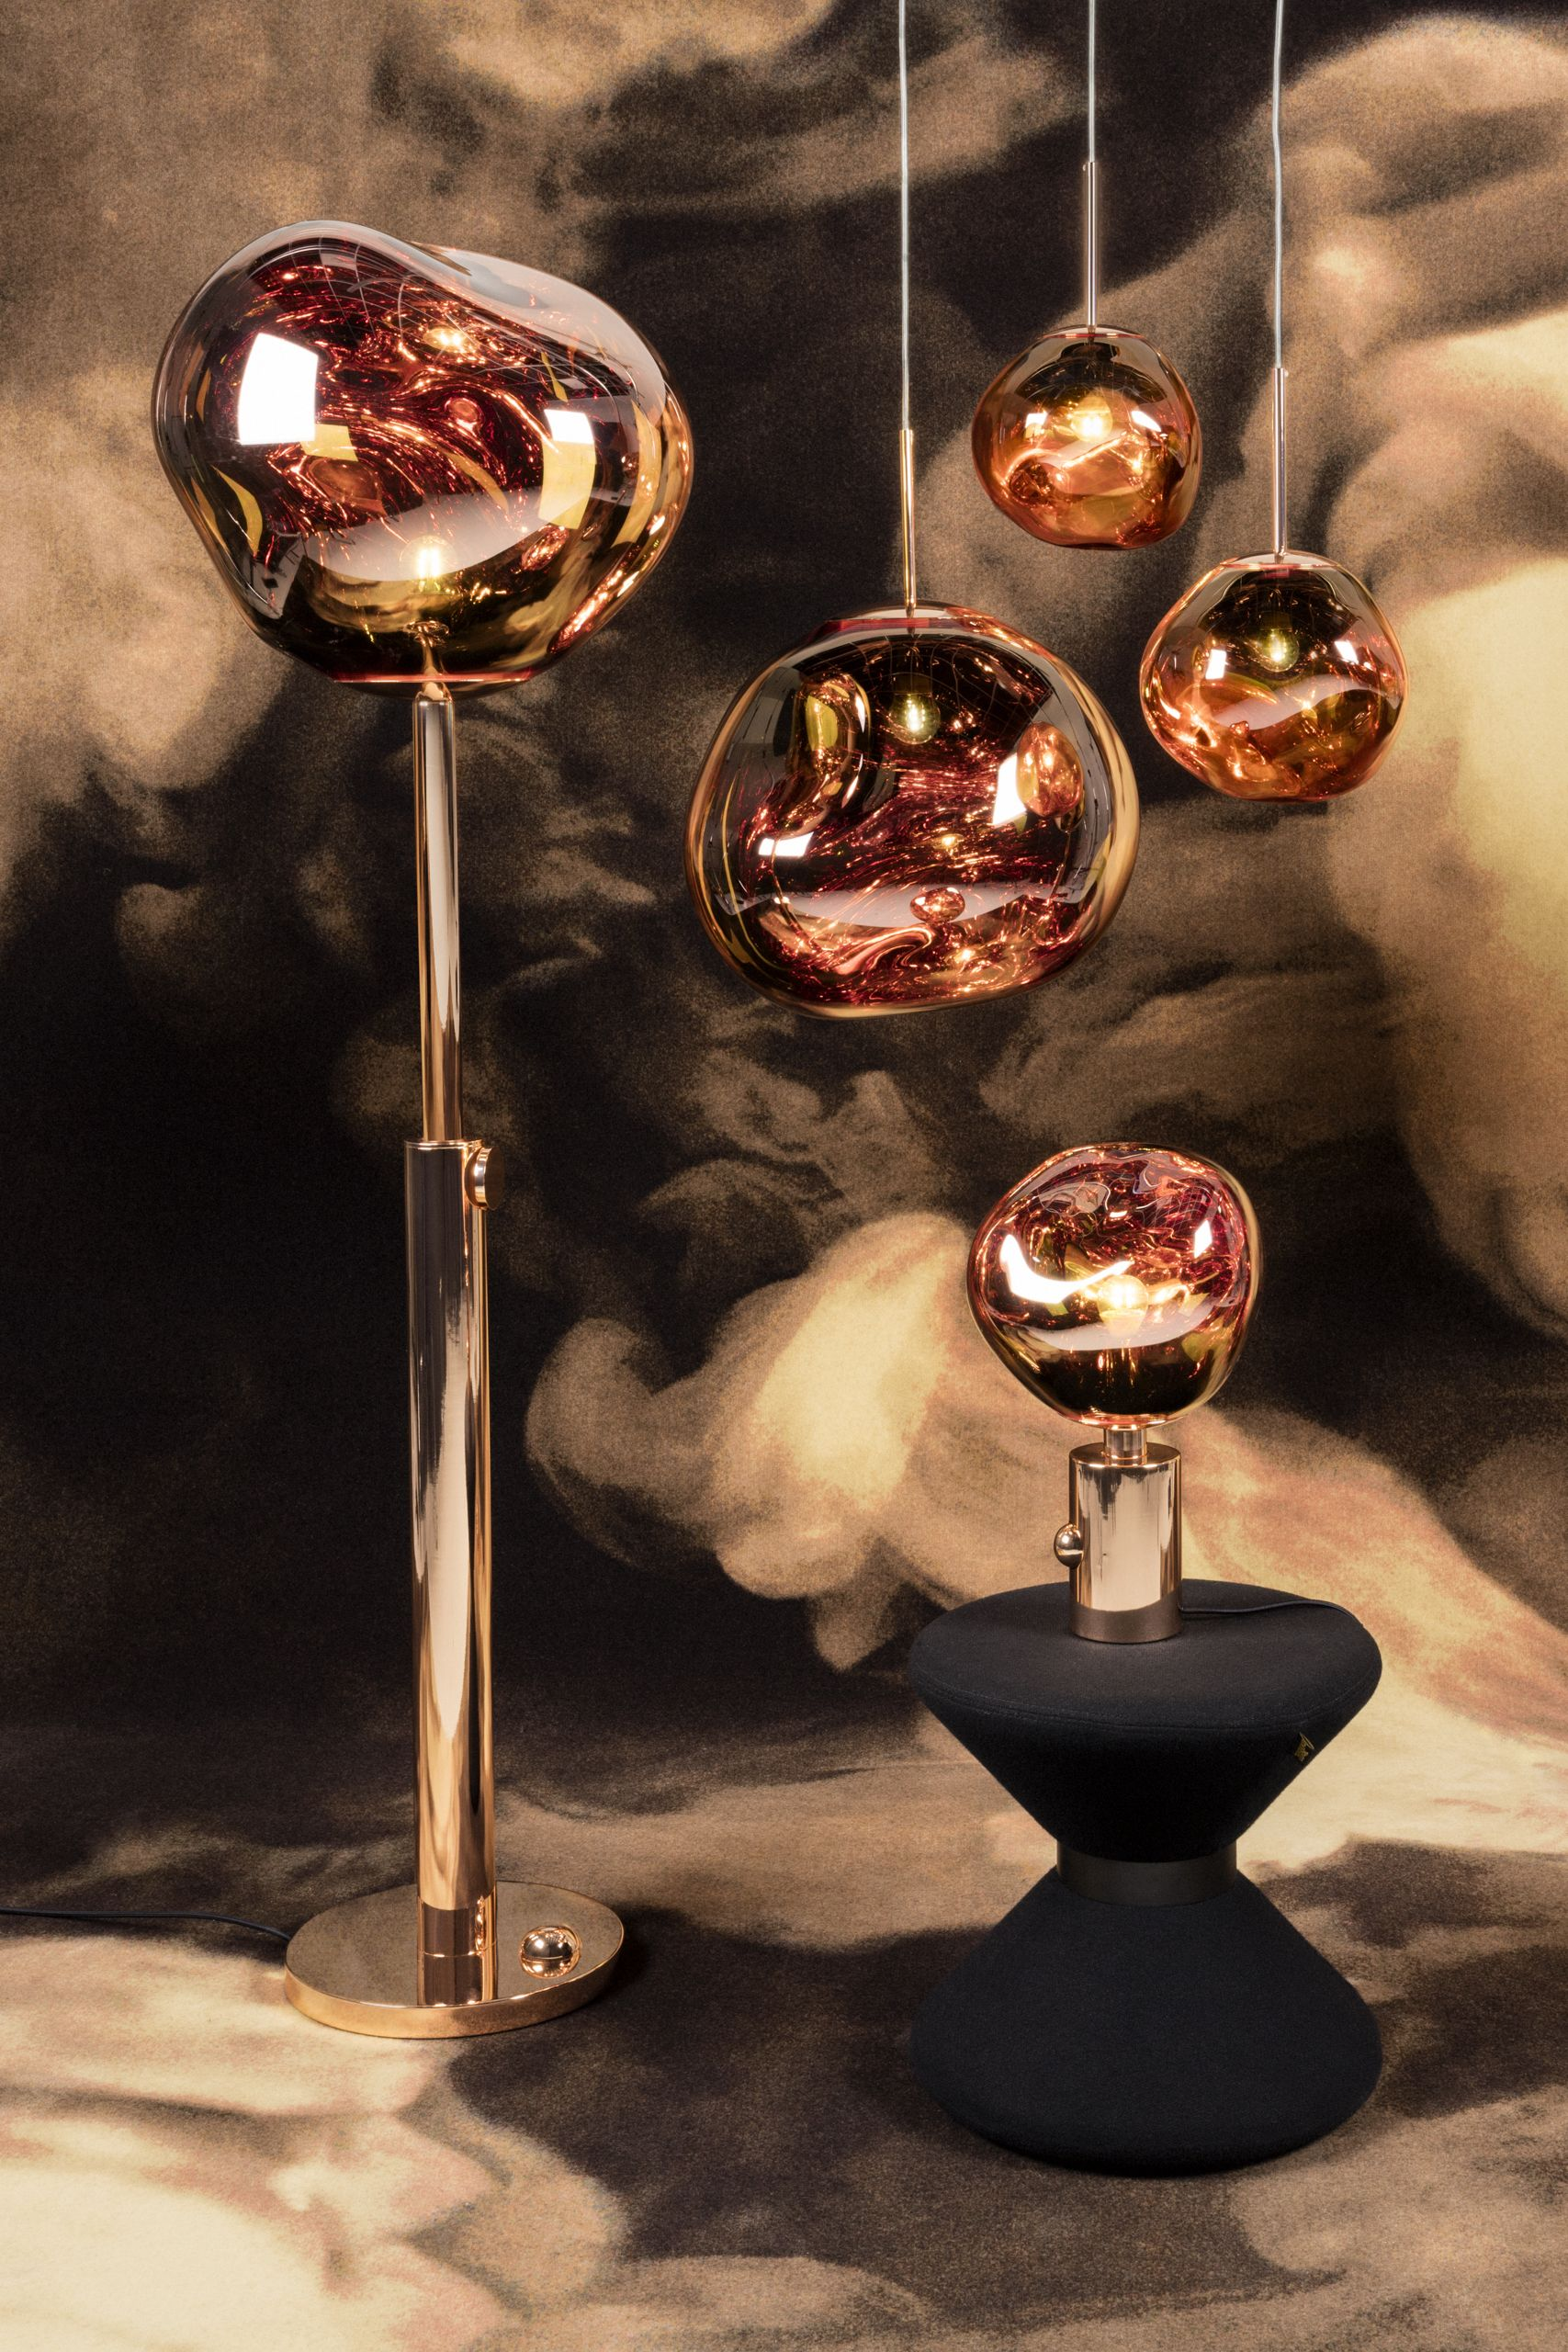 Melt Copper Family Portrait 15 Off All Tom Dixon Lighting Furniture And Accessories Now Thru October 15th Shop The Collection On Rouse Tom Dixon Melt Tom Dixon Tom Dixon Lighting